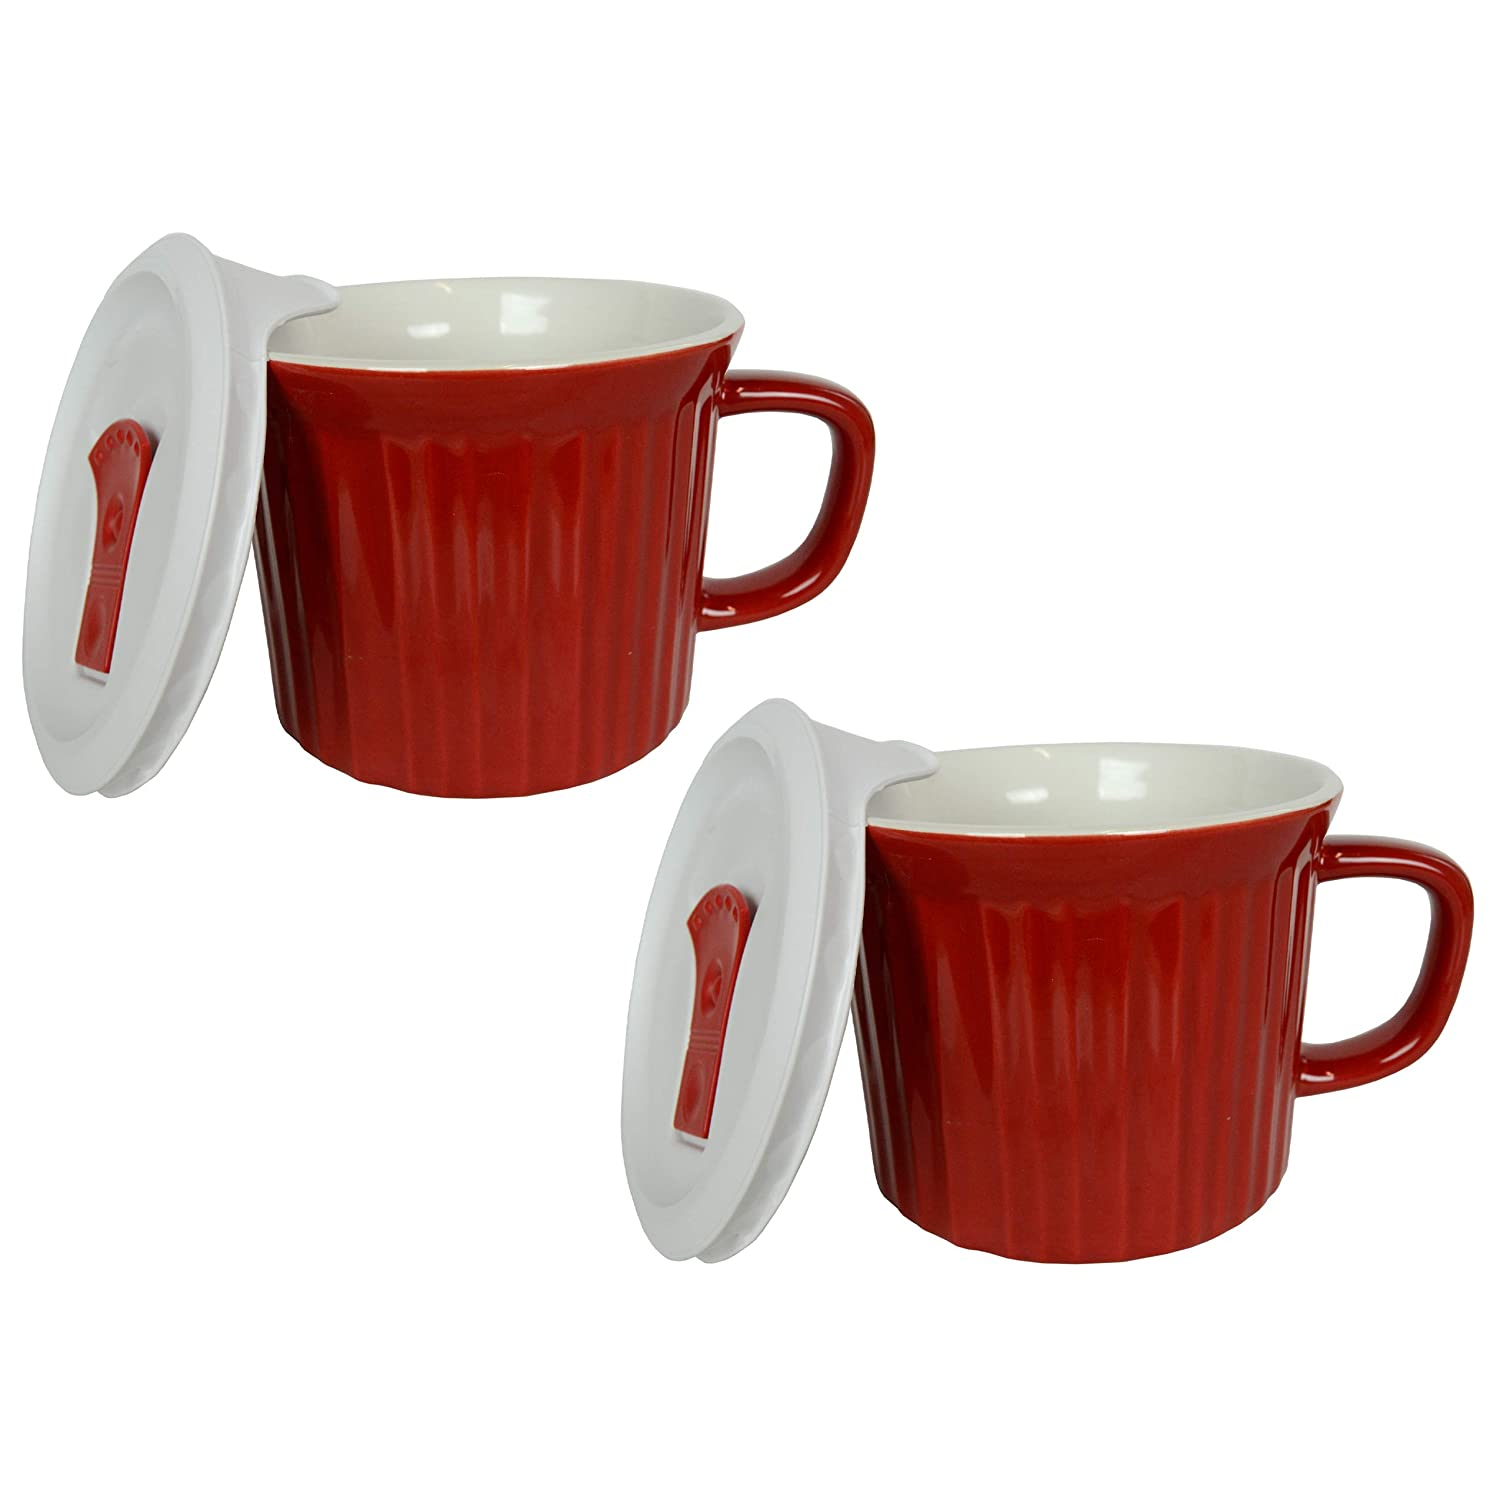 Corningware 20 Ounce Tomato Red Meal Mug With Vented Lid – 2 Pack